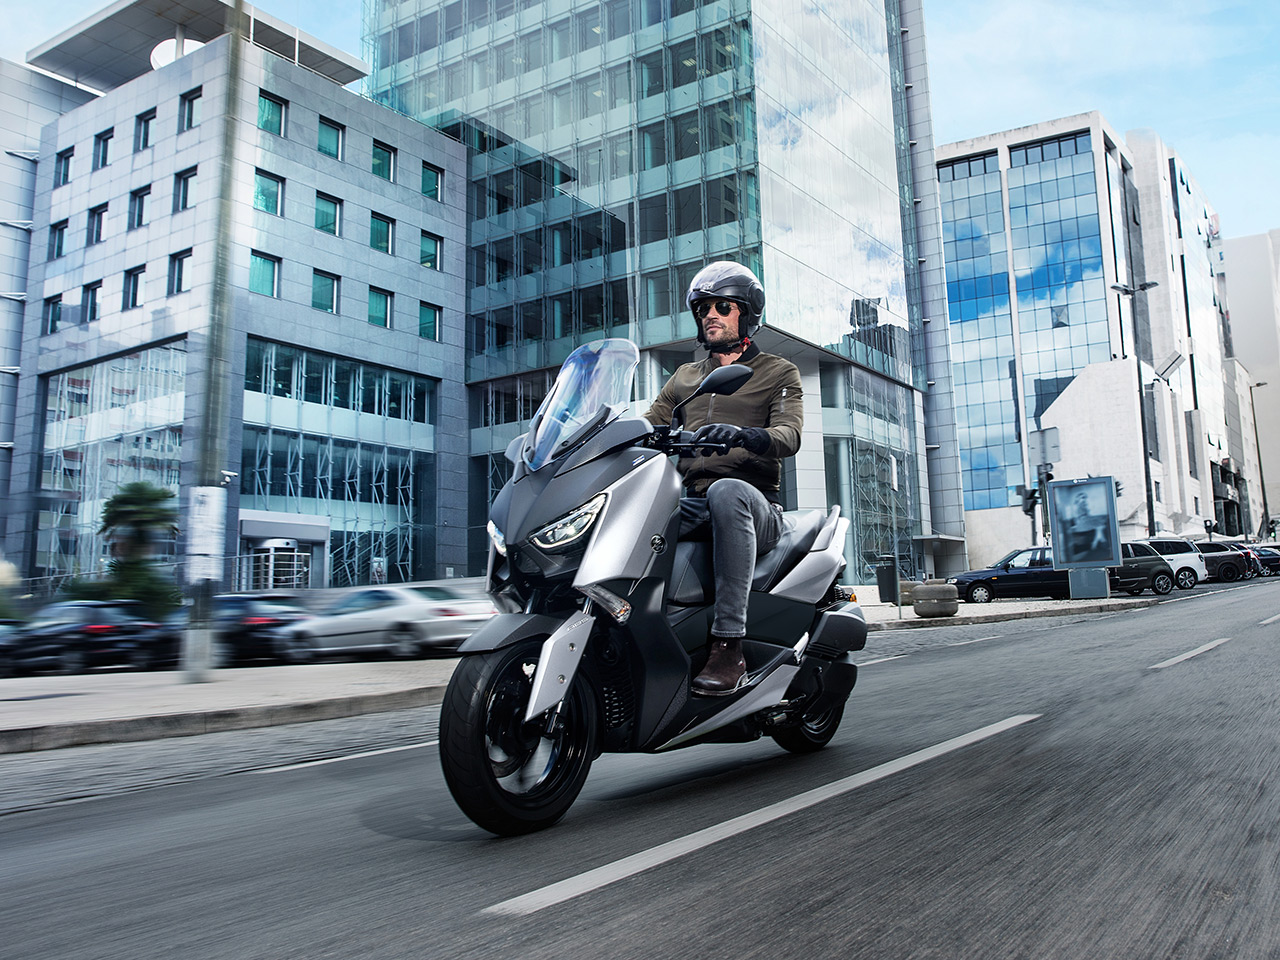 Yamaha XMAX 300 scooter in Matt Silver colour riding down city street